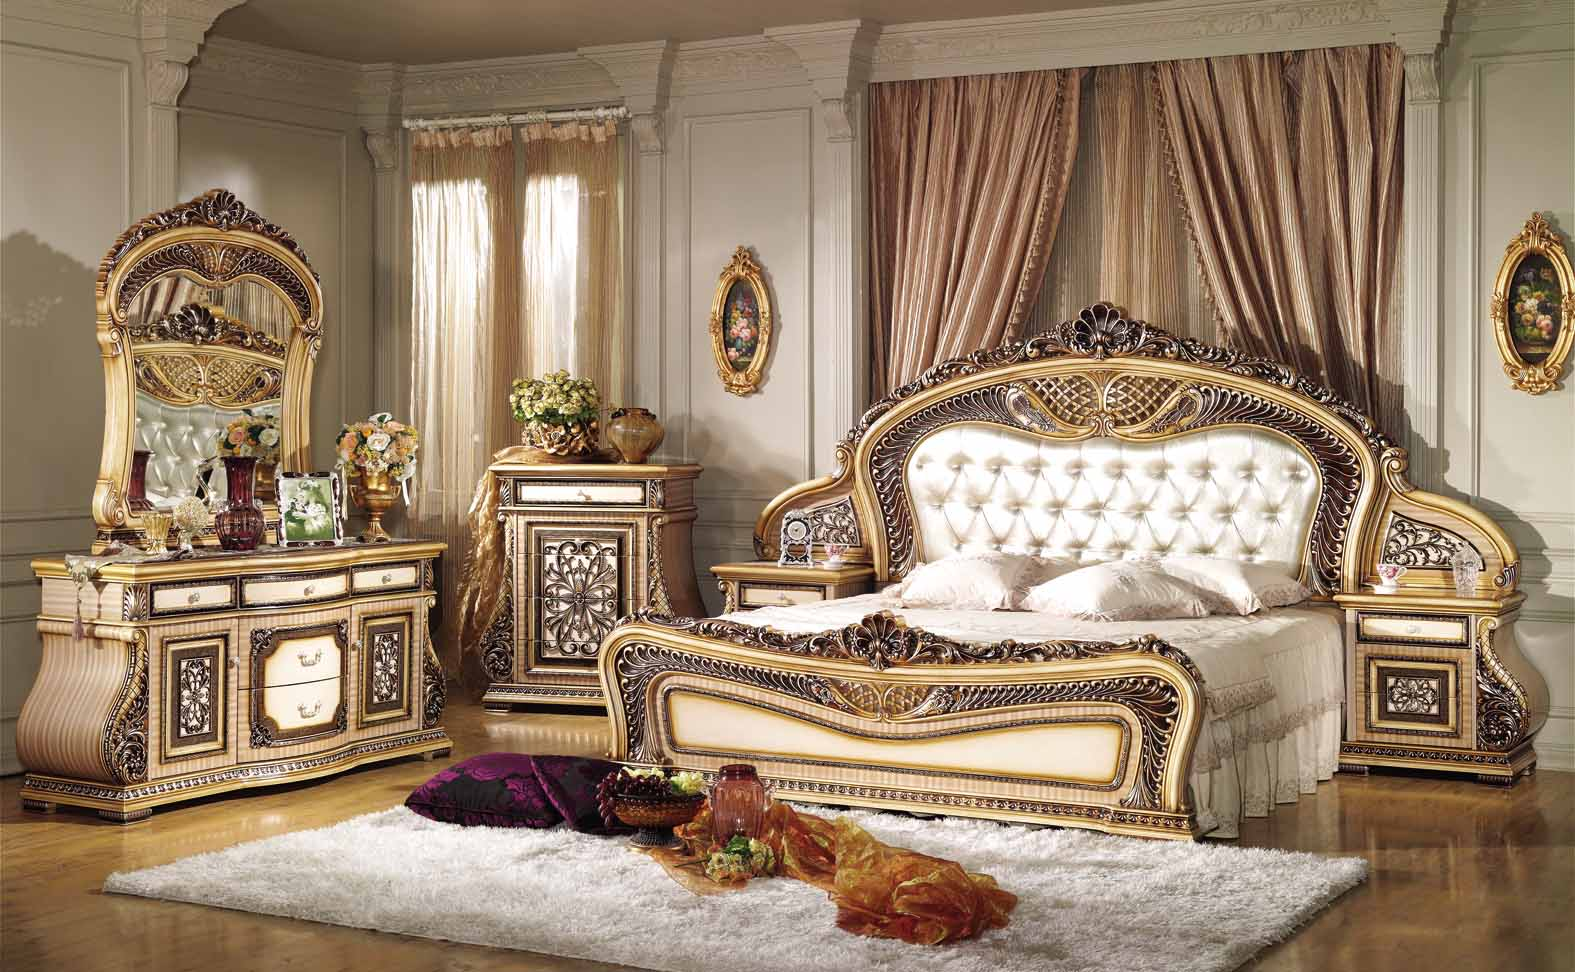 Photos of bedroom design : incredible classic bedroom furniture ~ glubdubs jmhknak